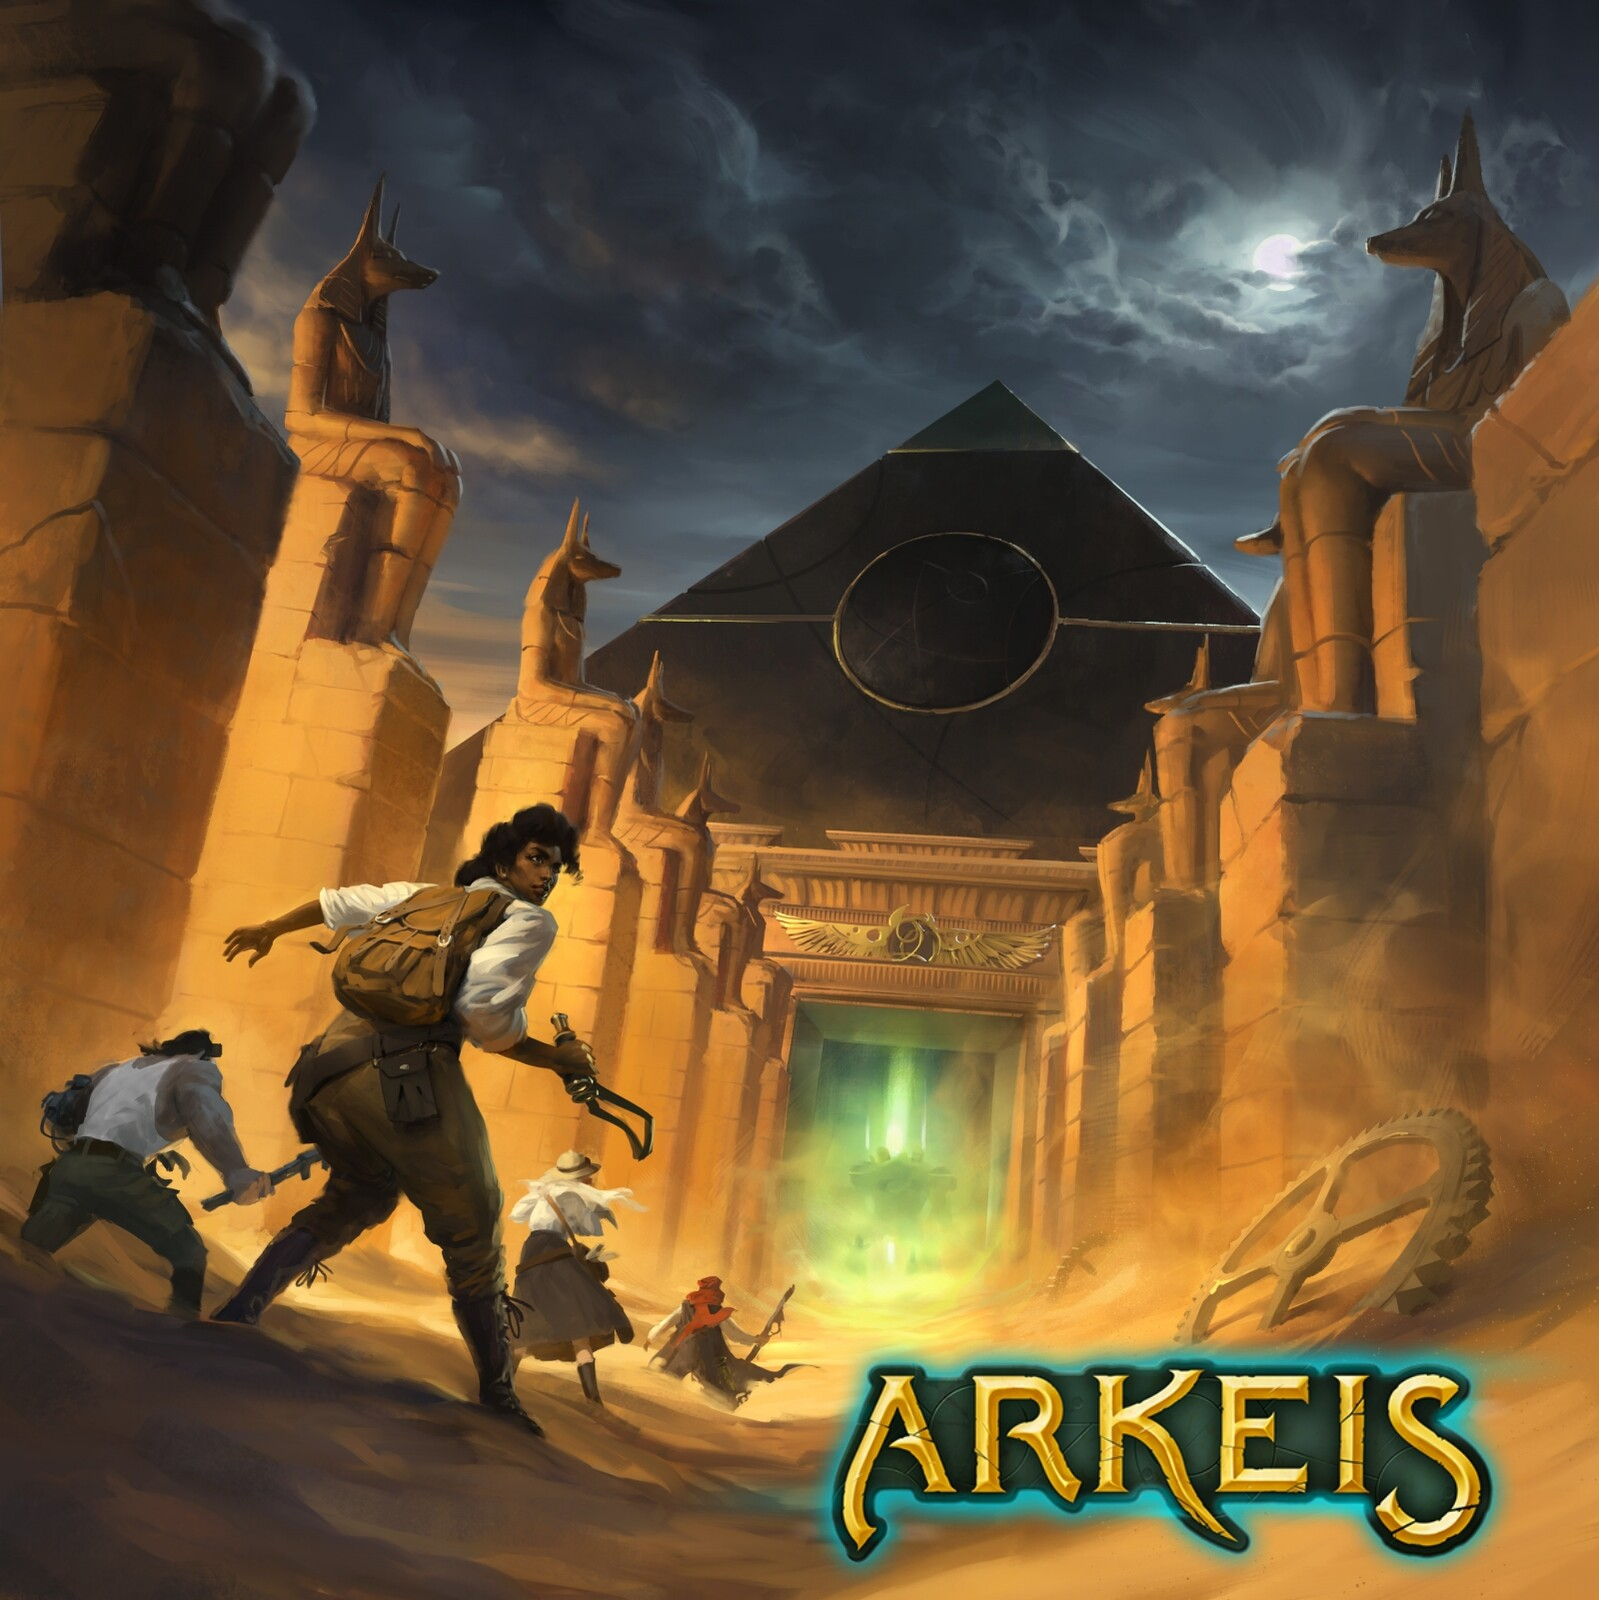 Arkeis : The Entrance of the Pyramid